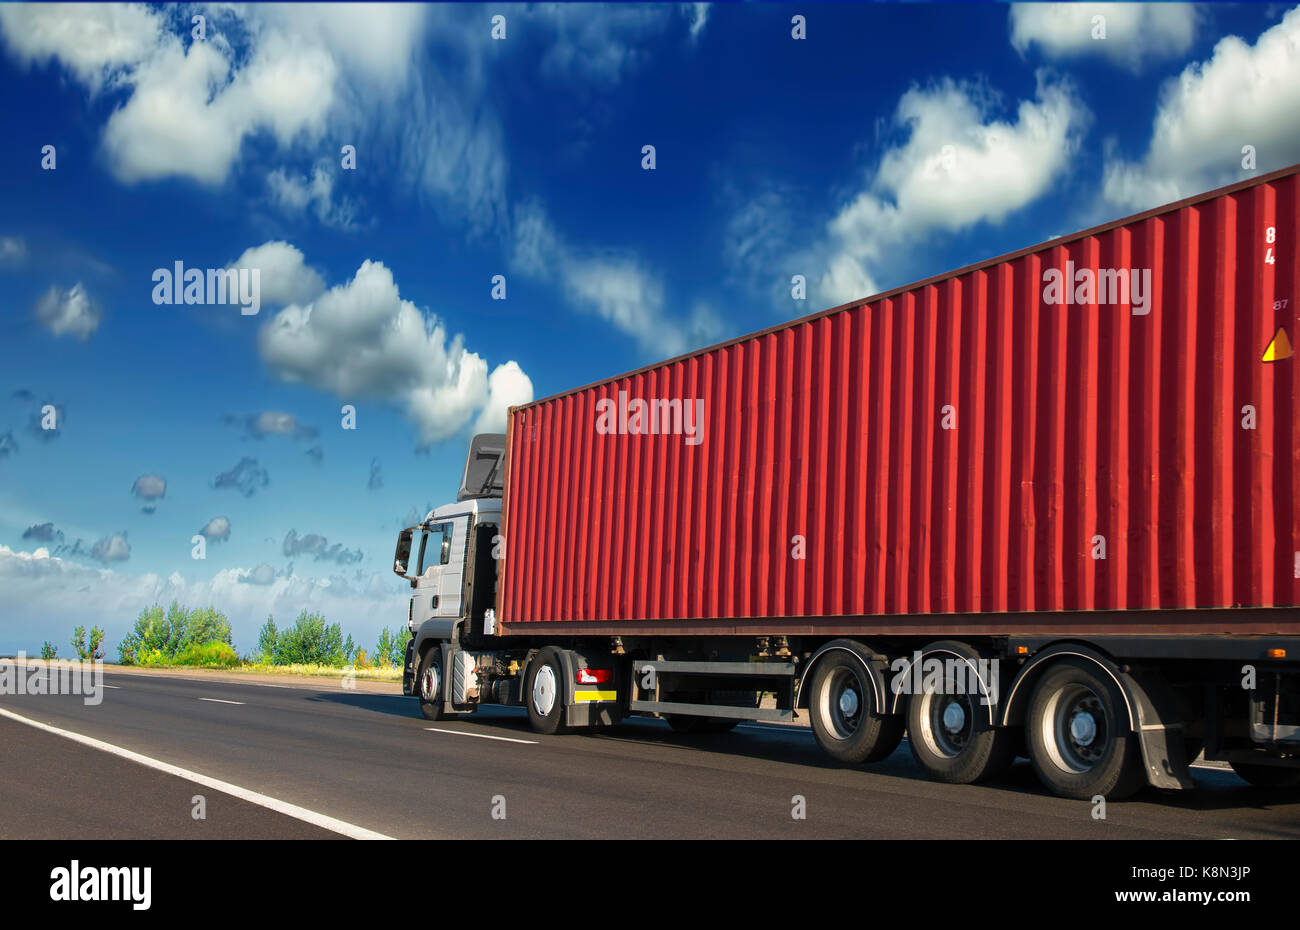 Trailers carrying containers clear day on the highway - Stock Image